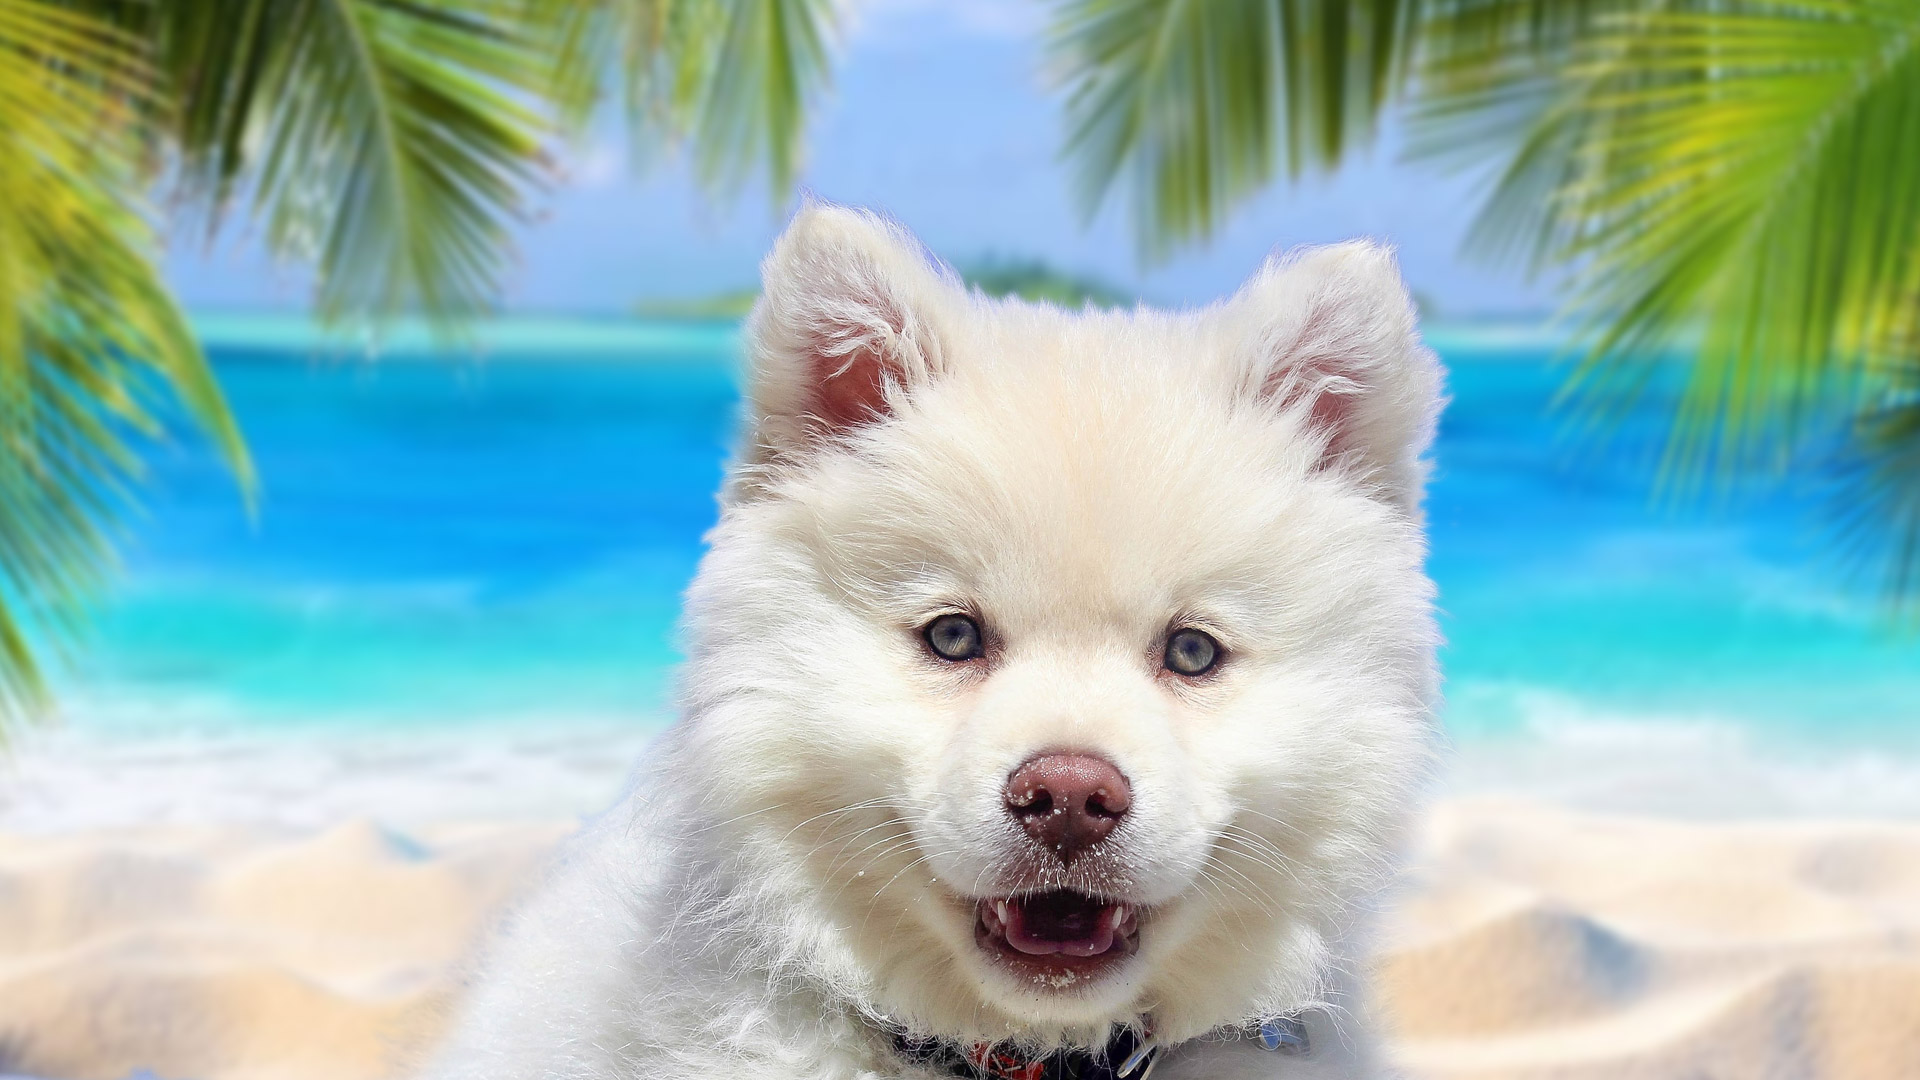 Cute Dogs And Puppies Wallpapers Hd New Tab Themes Backgrounds